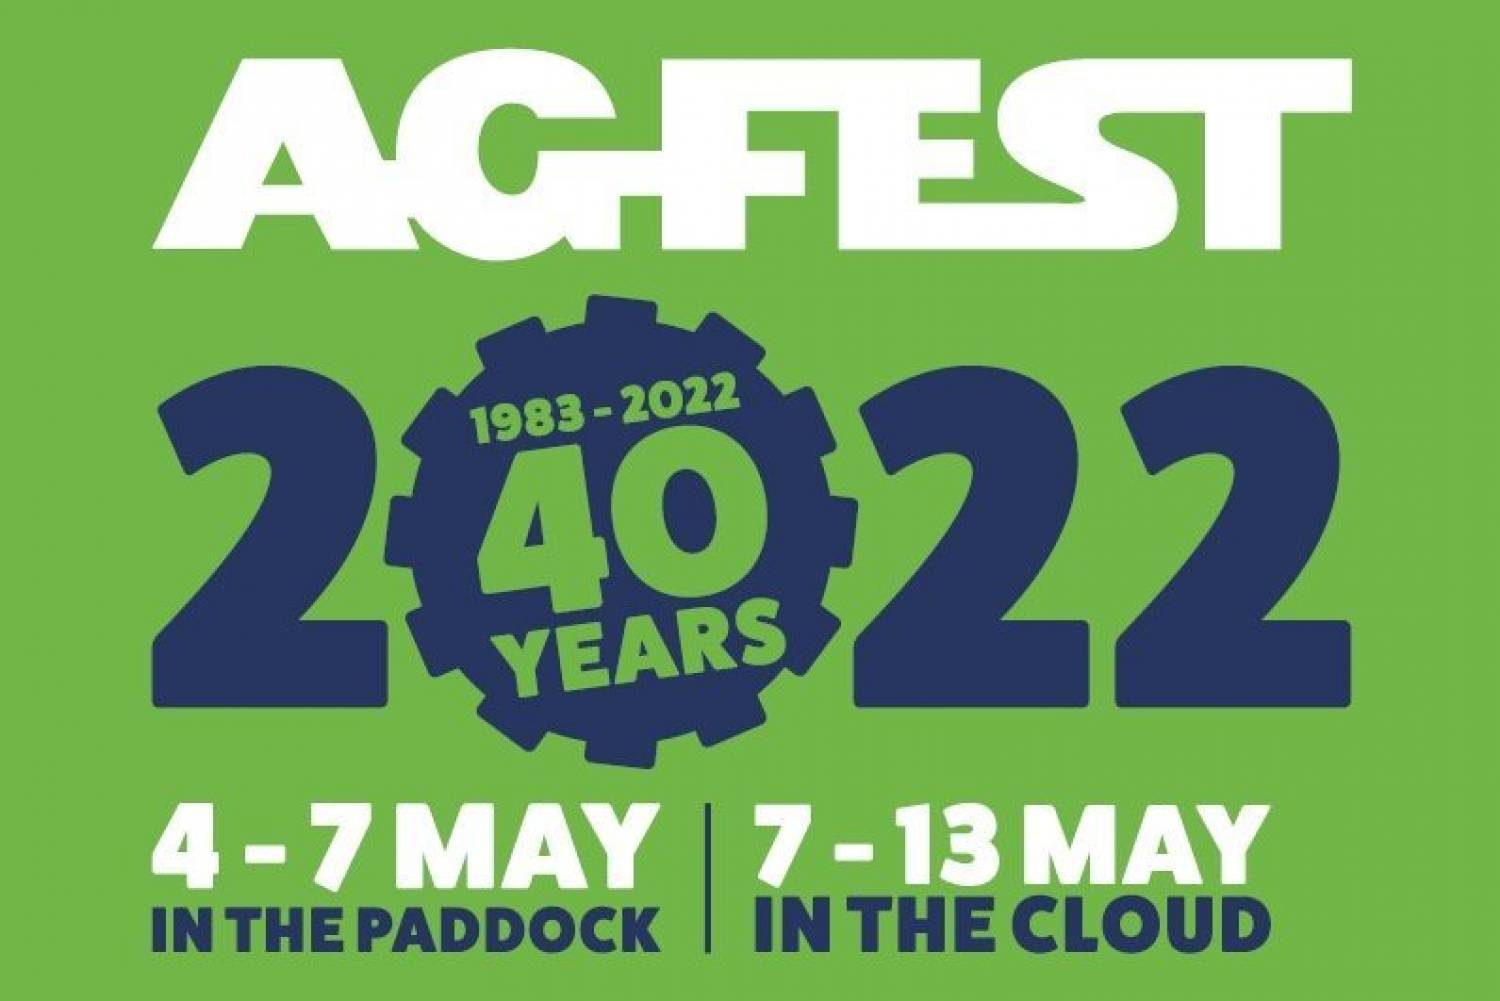 Agfest 2022 WEB Green Stacked JPEG